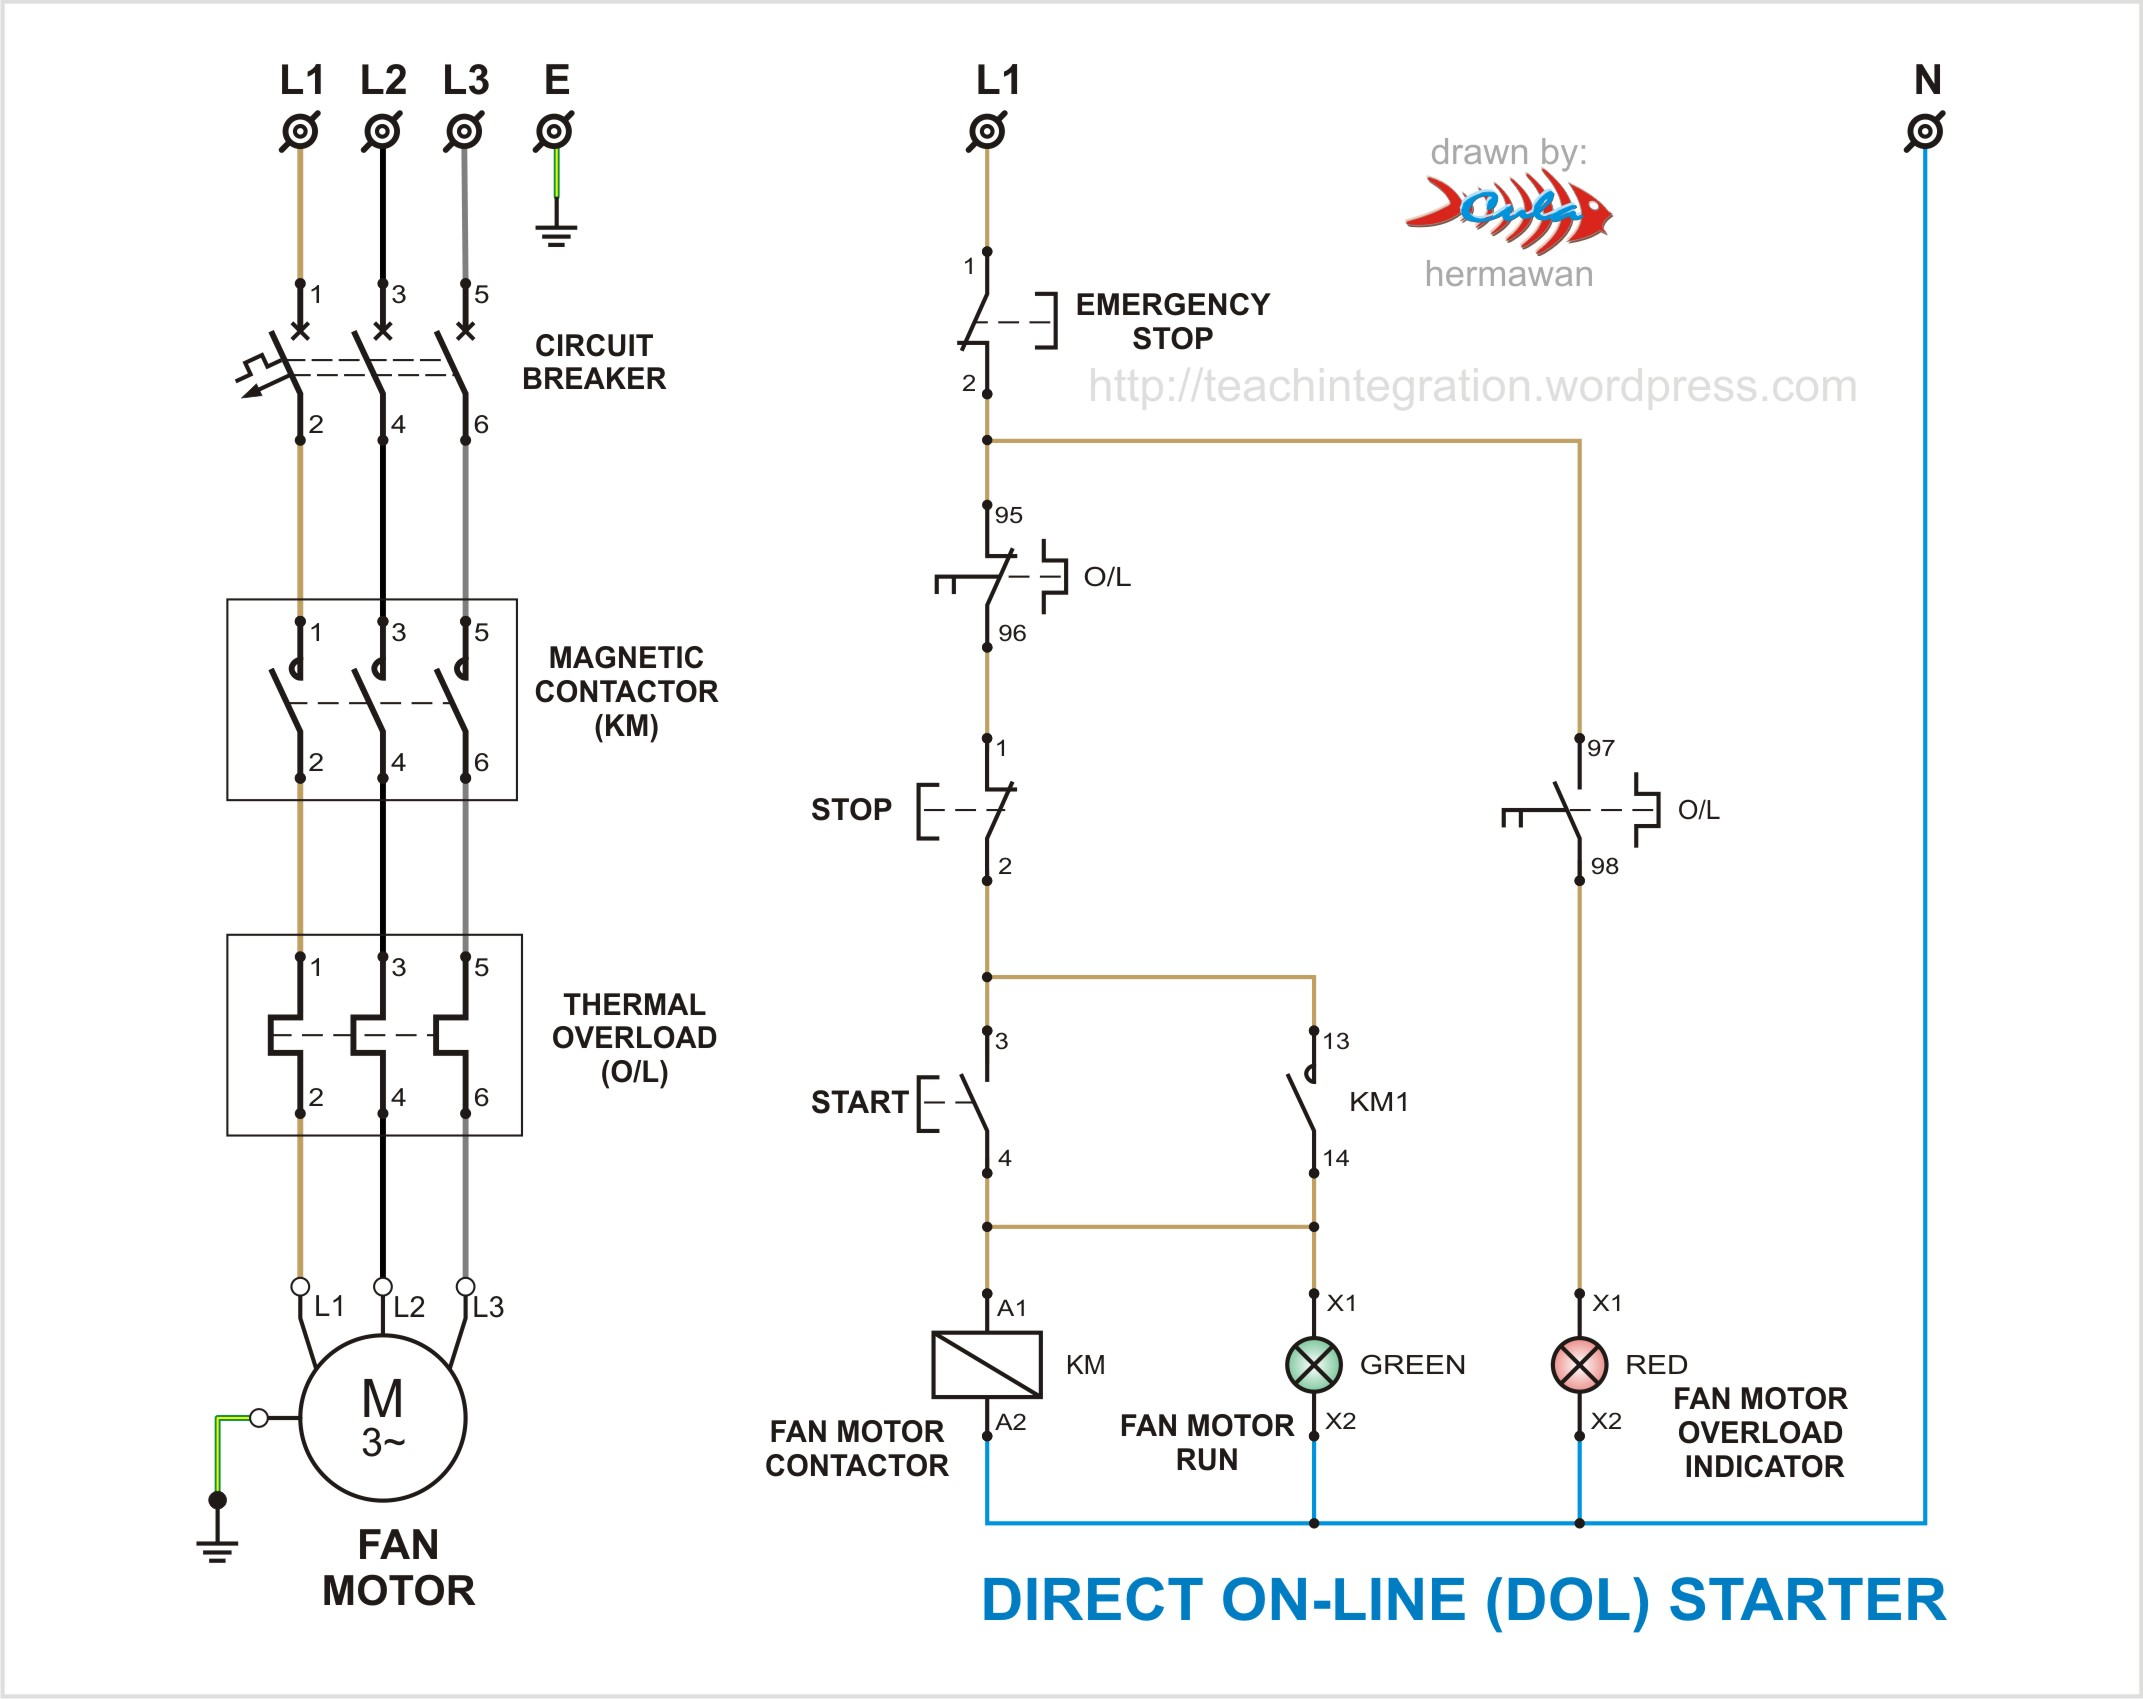 3 phase motor control panel wiring diagram 240 volt ist wieviel watt dol starter pt teach integration